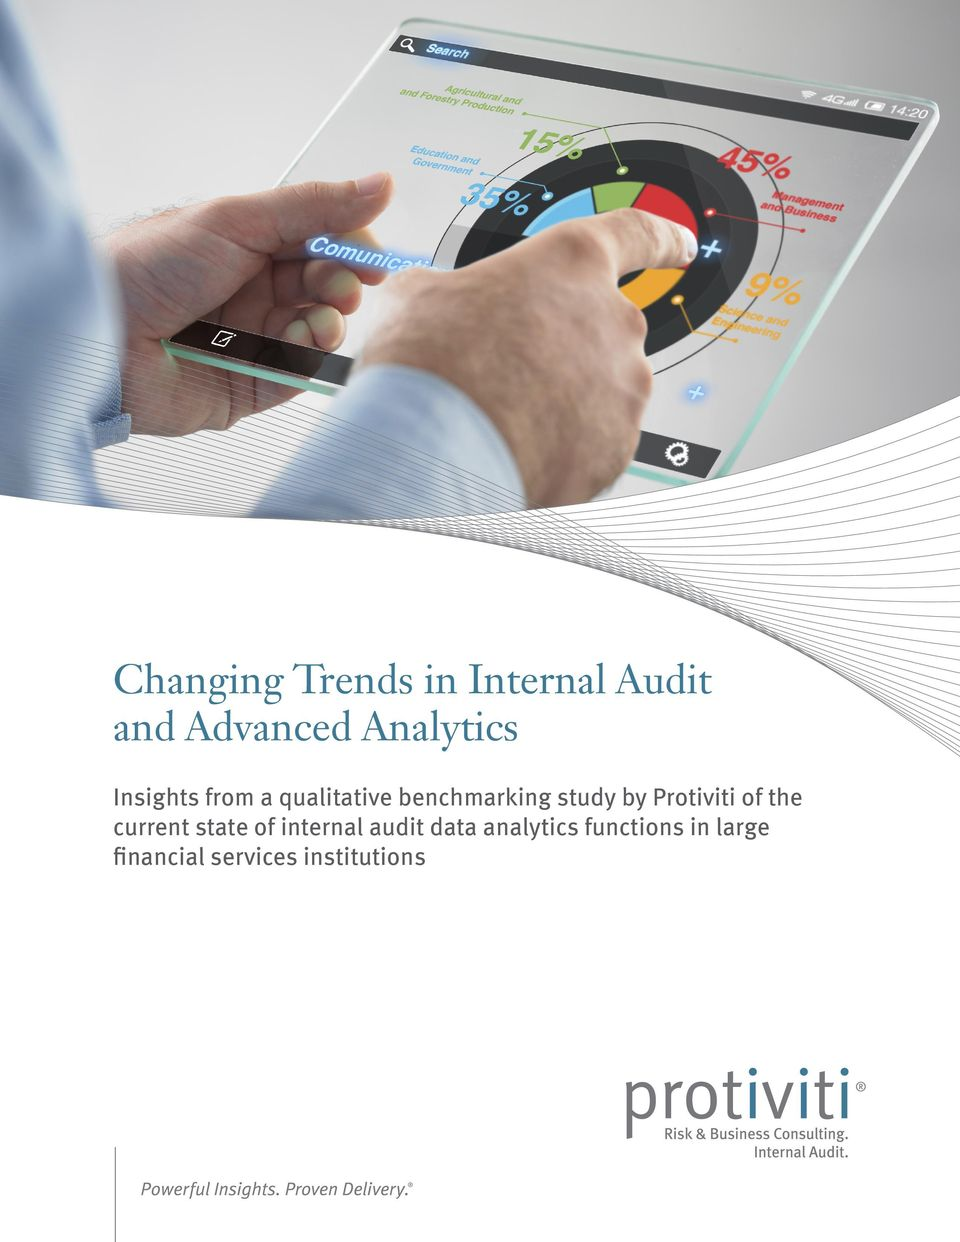 study by Protiviti of the current state of internal